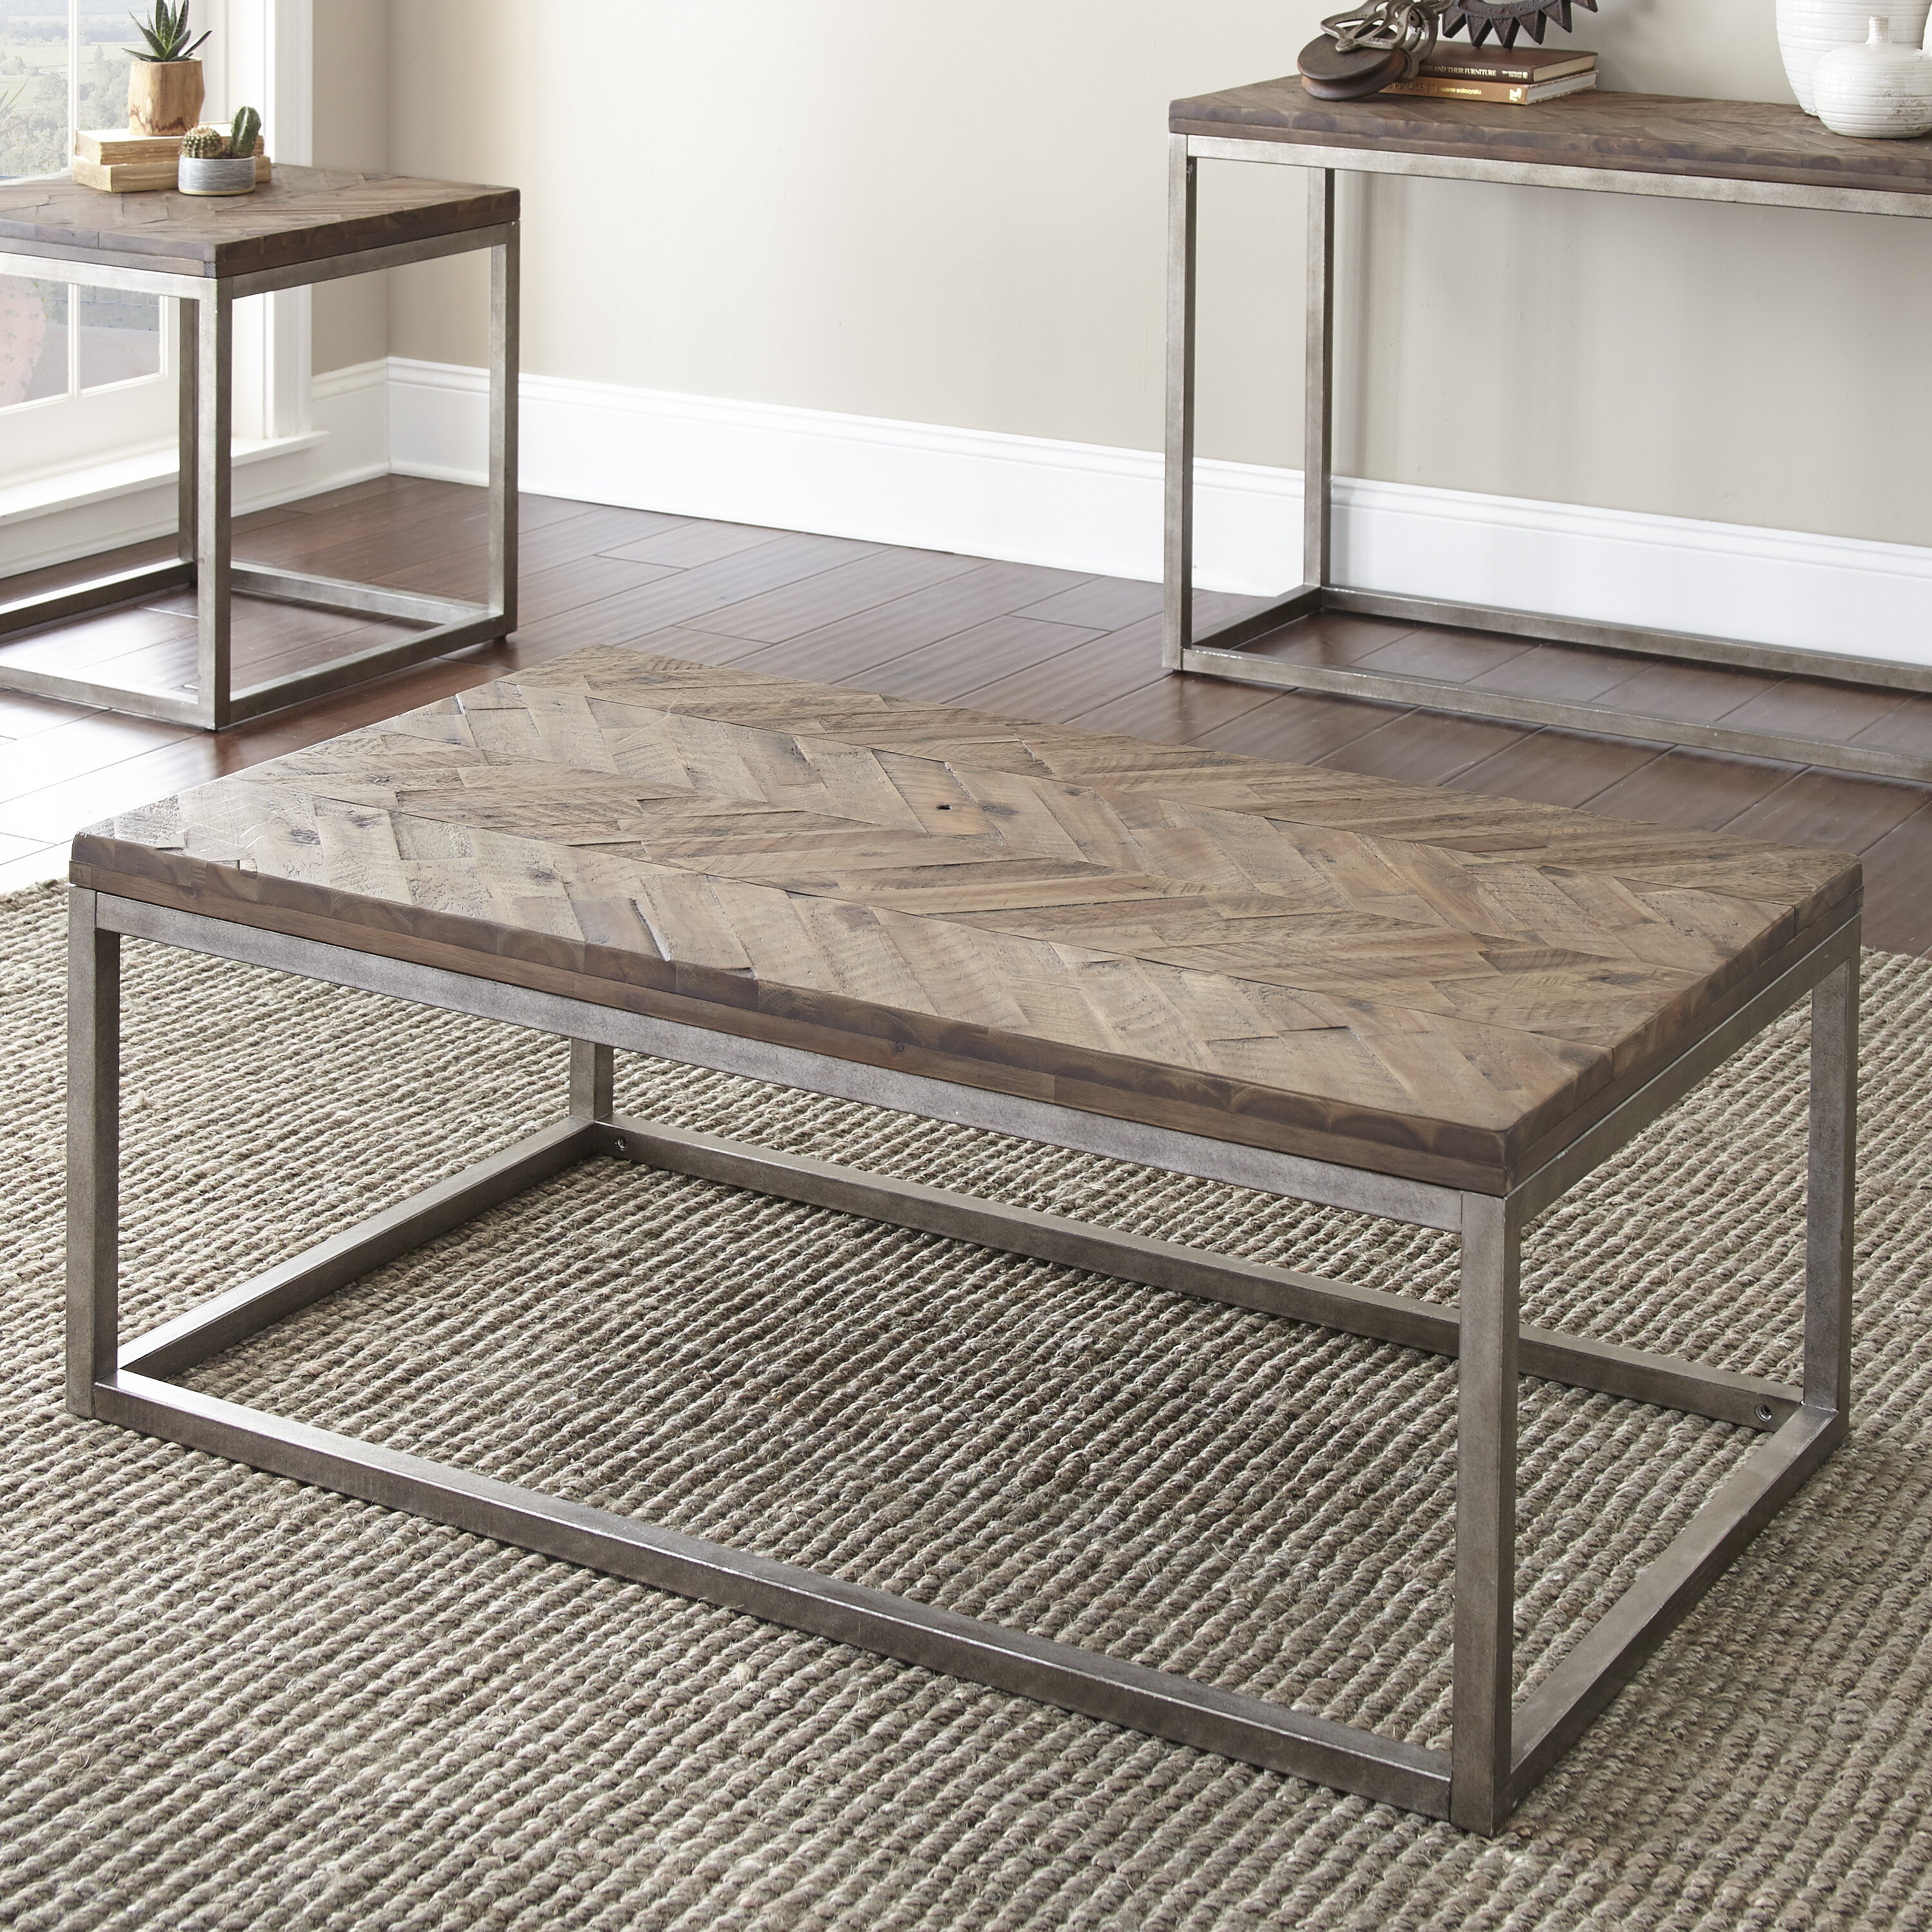 Laurel Foundry Modern Farmhouse Kenton Coffee Table & Reviews